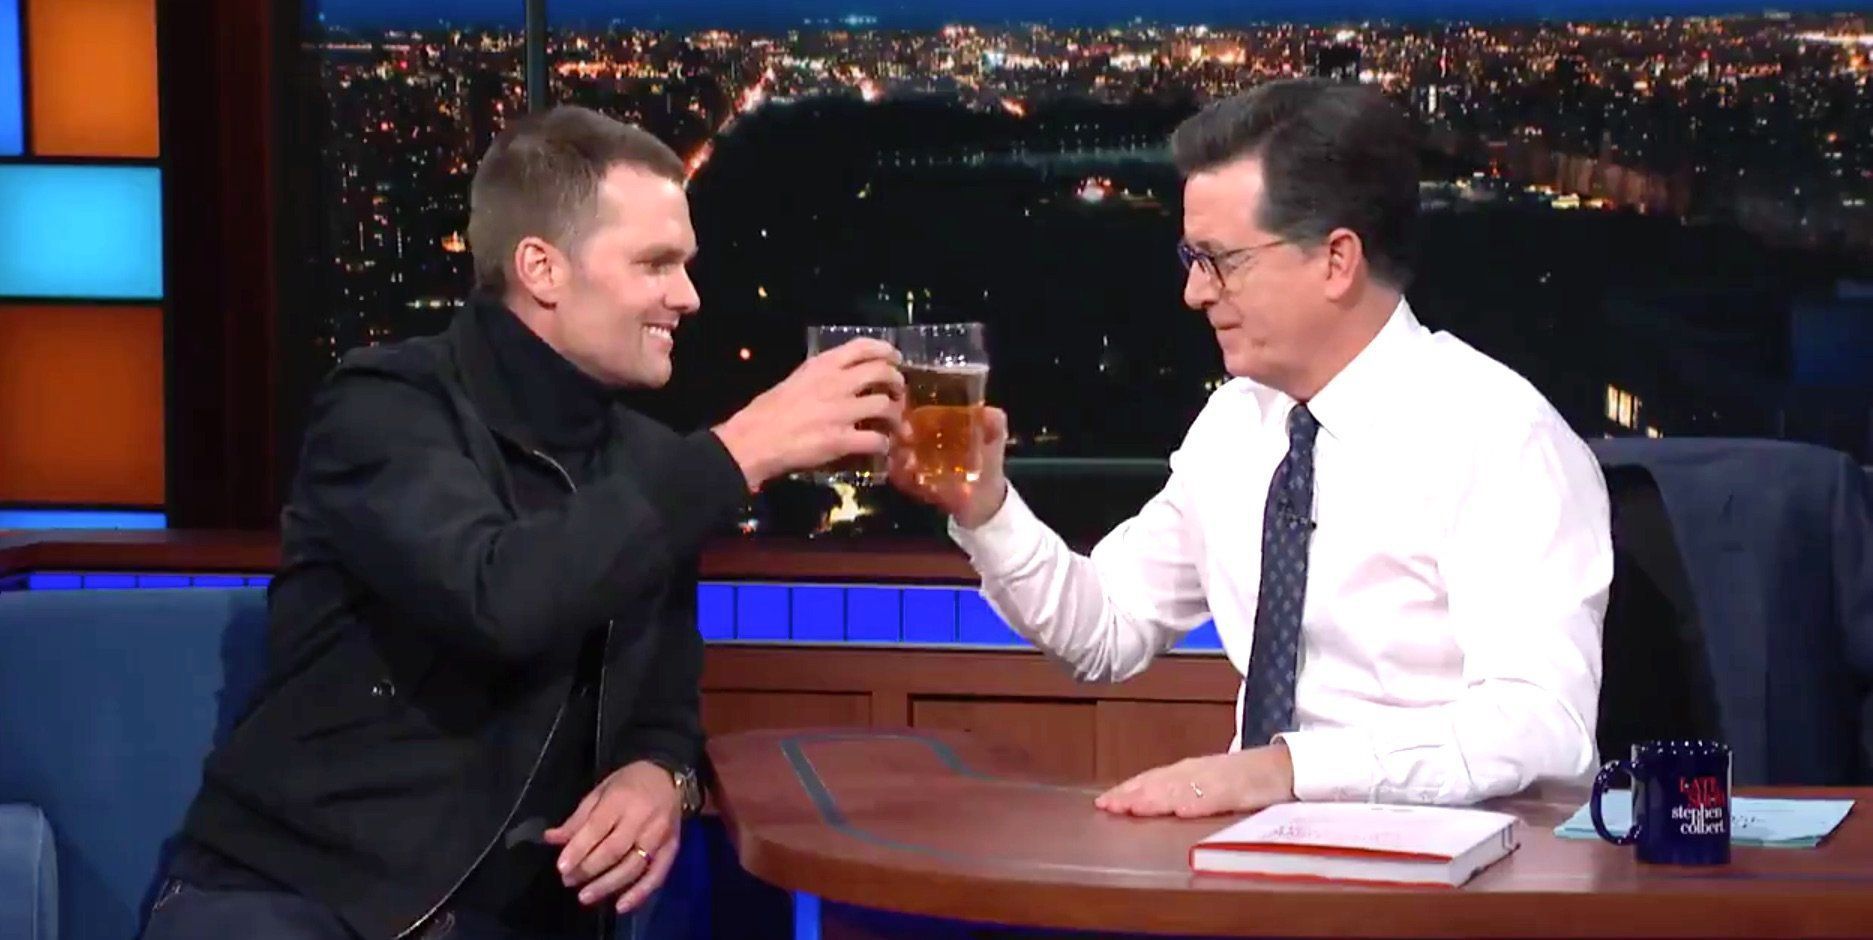 Tom Brady Destroys Stephen Colbert In A Beer Chugging Contest